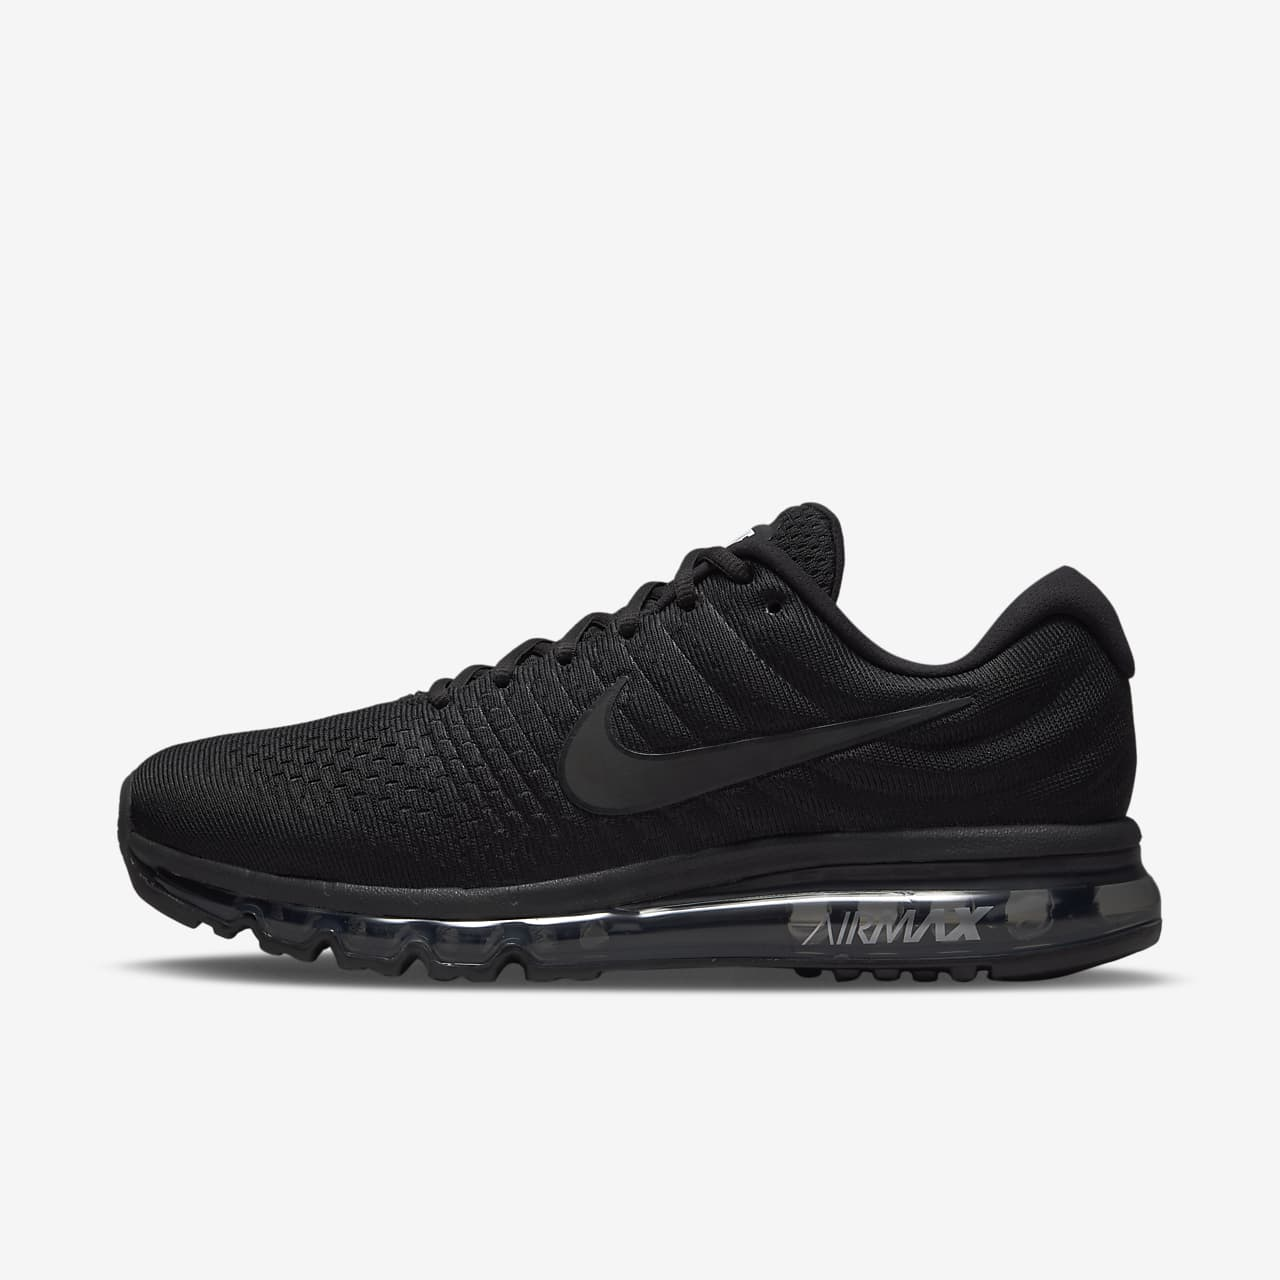 nike men's air max 2017 running shoe new collection blue nz